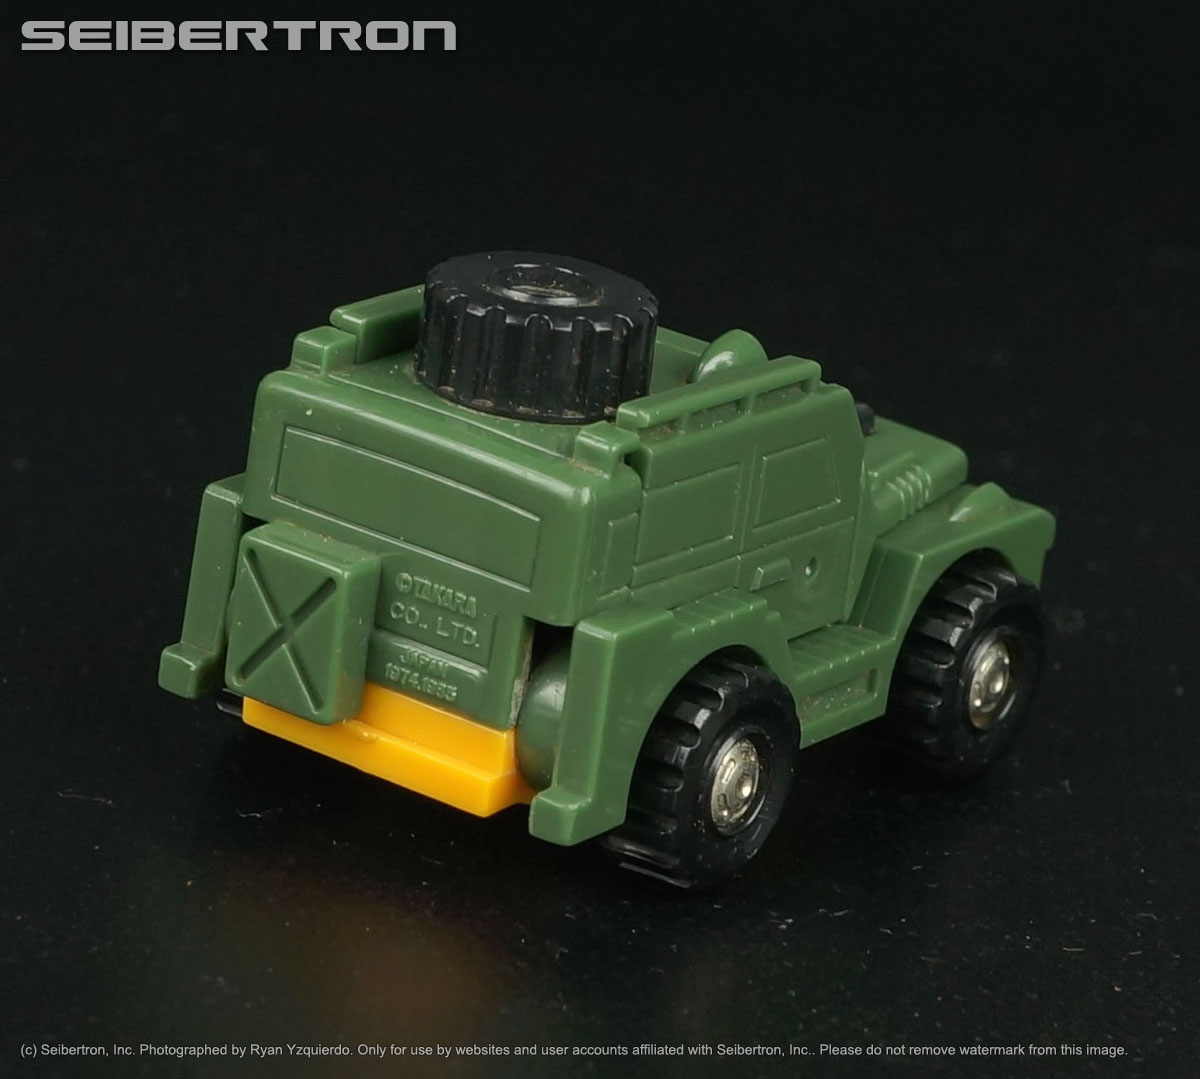 Transformers listings from Seibertron.com: BRAWN Transformers G1 Mini-bot Generation 1 Hasbro 1984 vintage Pre-rub